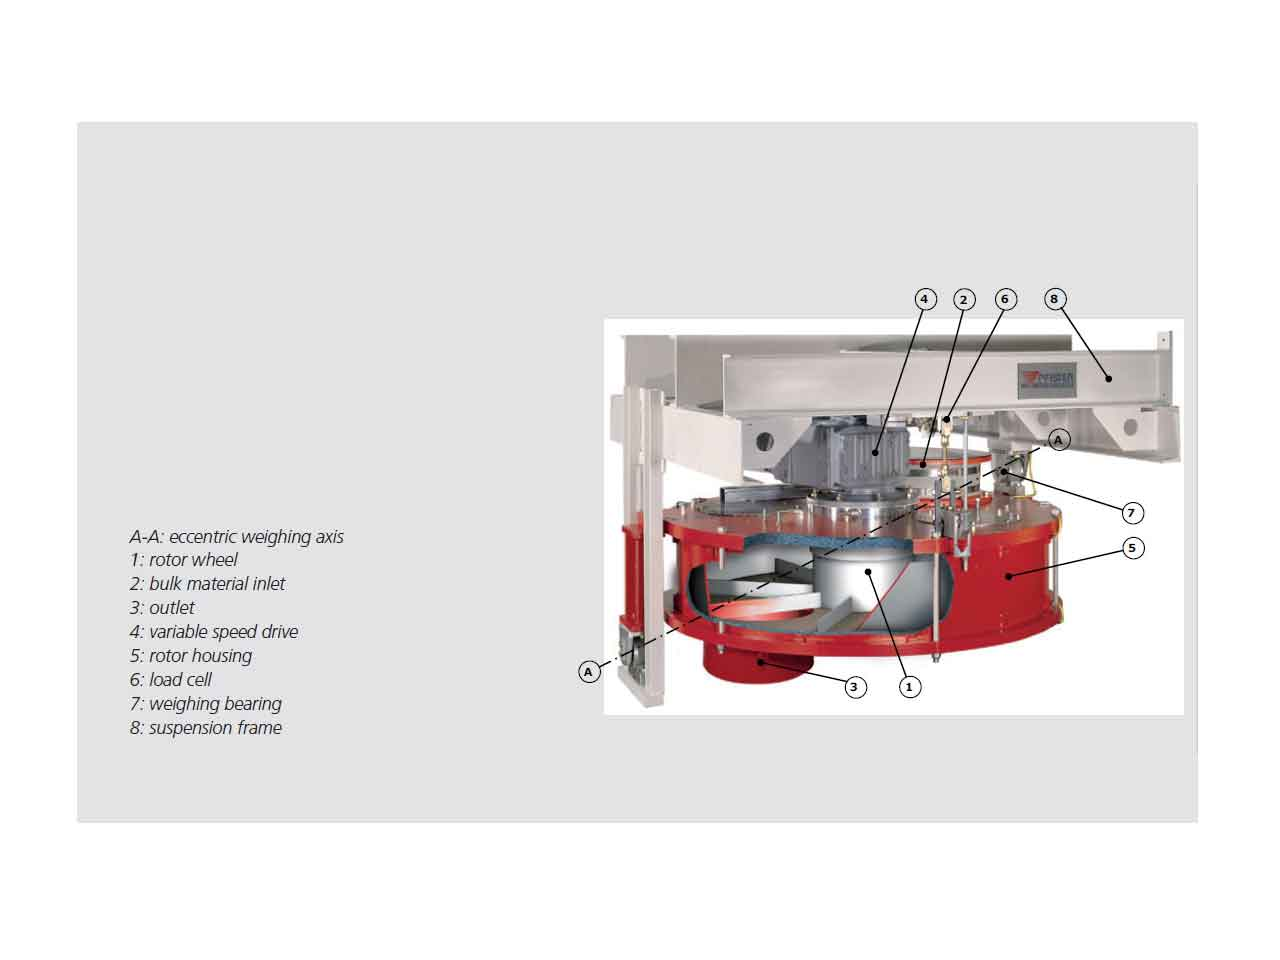 Pfister operational scheme for rotorweighfeeder